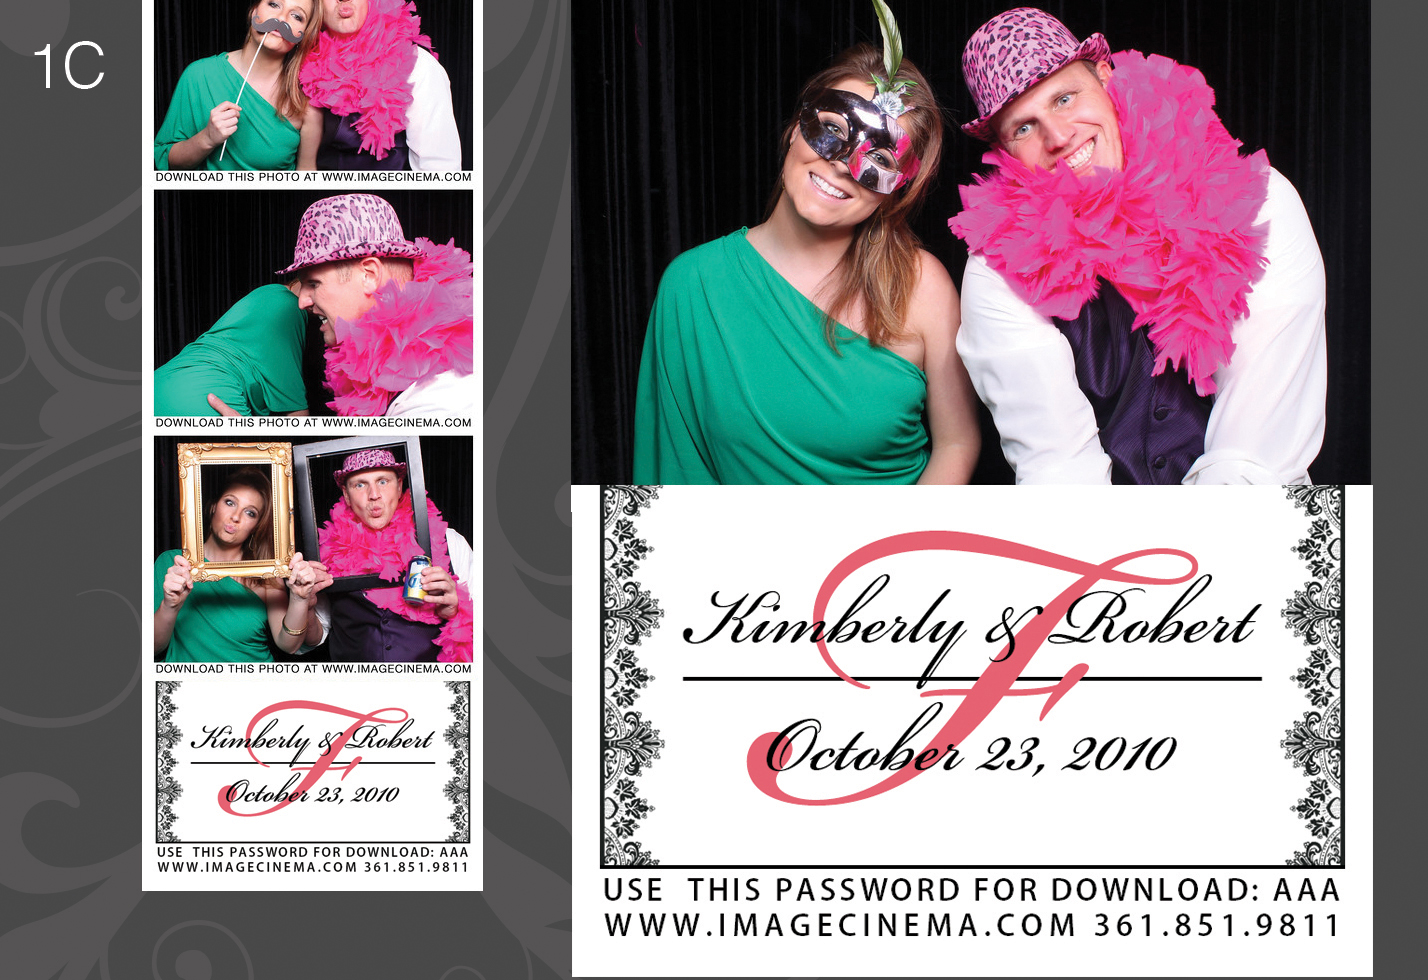 Photo Booth 1C